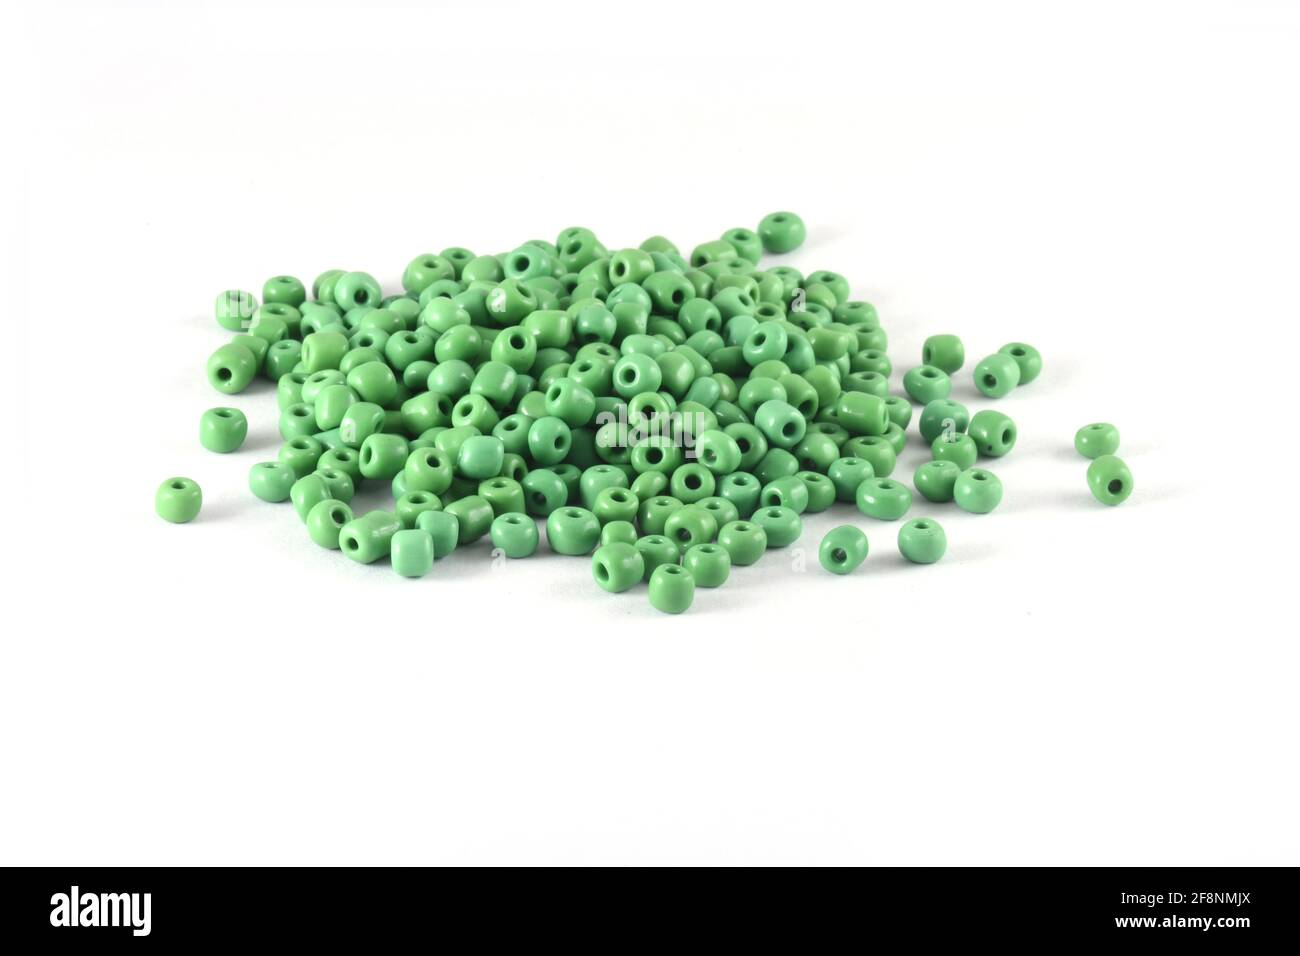 Beads spread on white background Background Close up, macro, make bead necklace or Bead Crochet Daily Beading Stock Photo